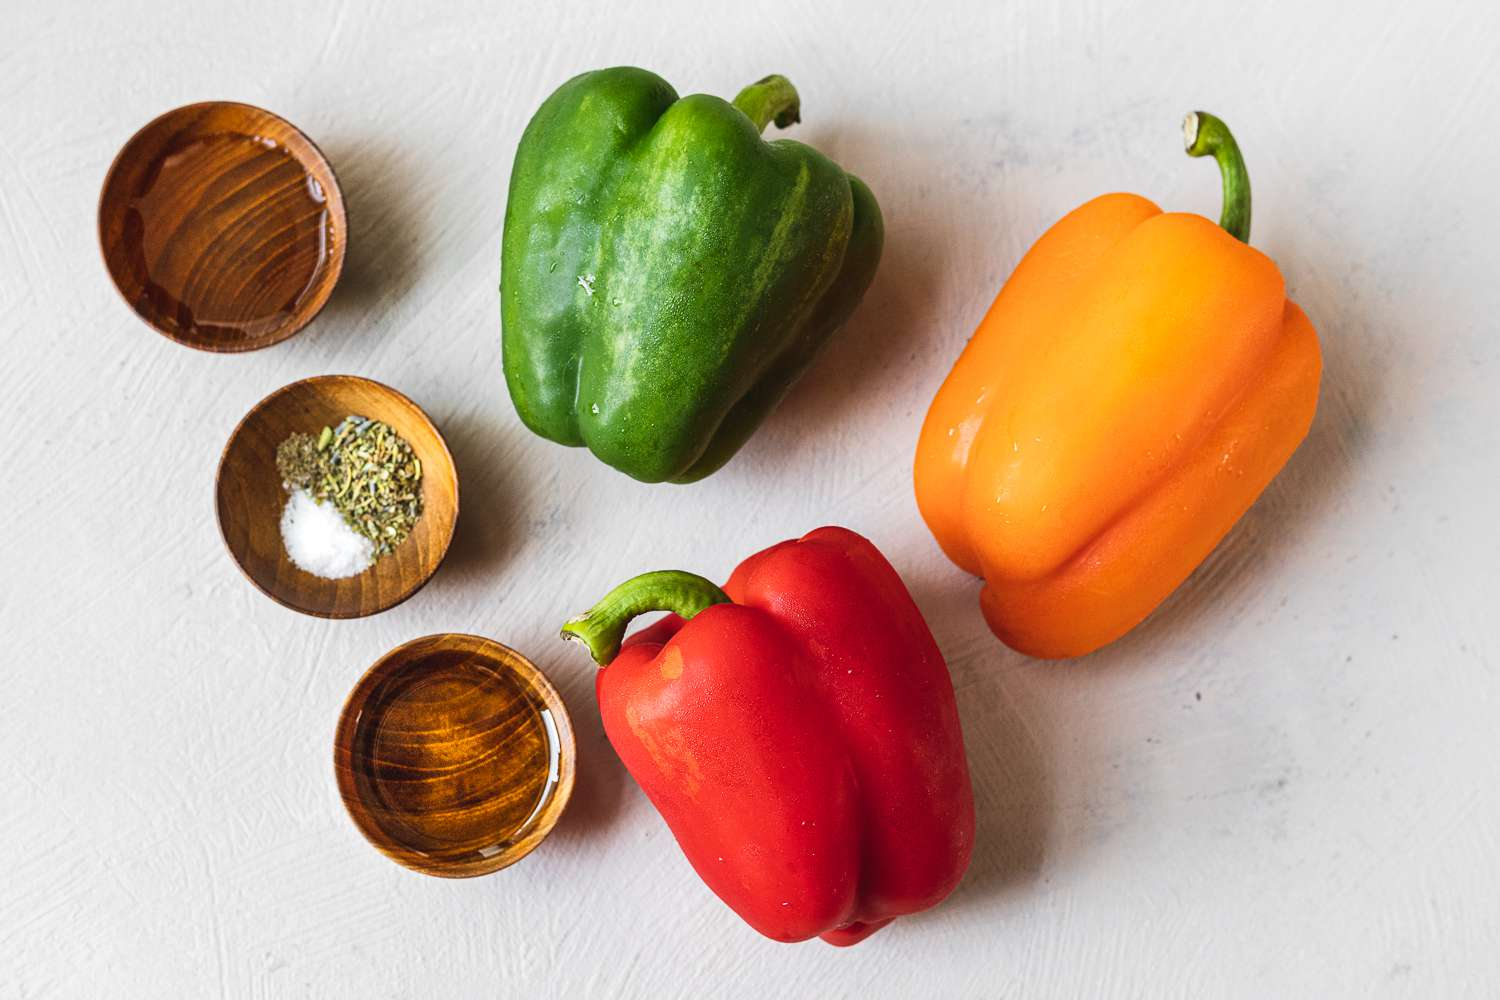 Ingredients for roasted peppers